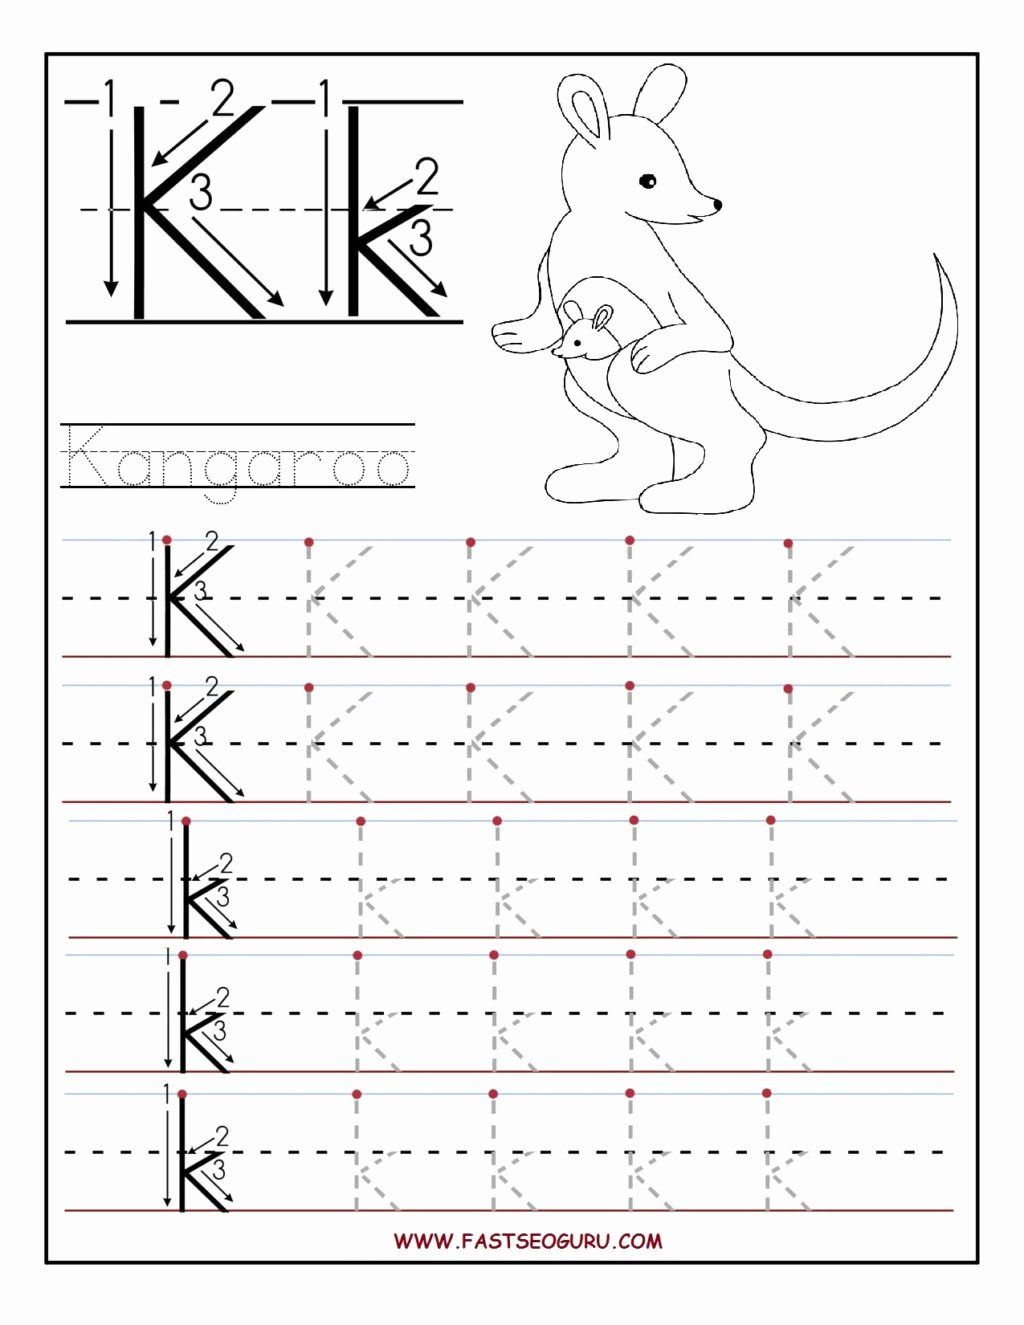 Alphabets Worksheets for Preschoolers Lovely Worksheet Remarkable Alphabet Worksheets Kindergarten